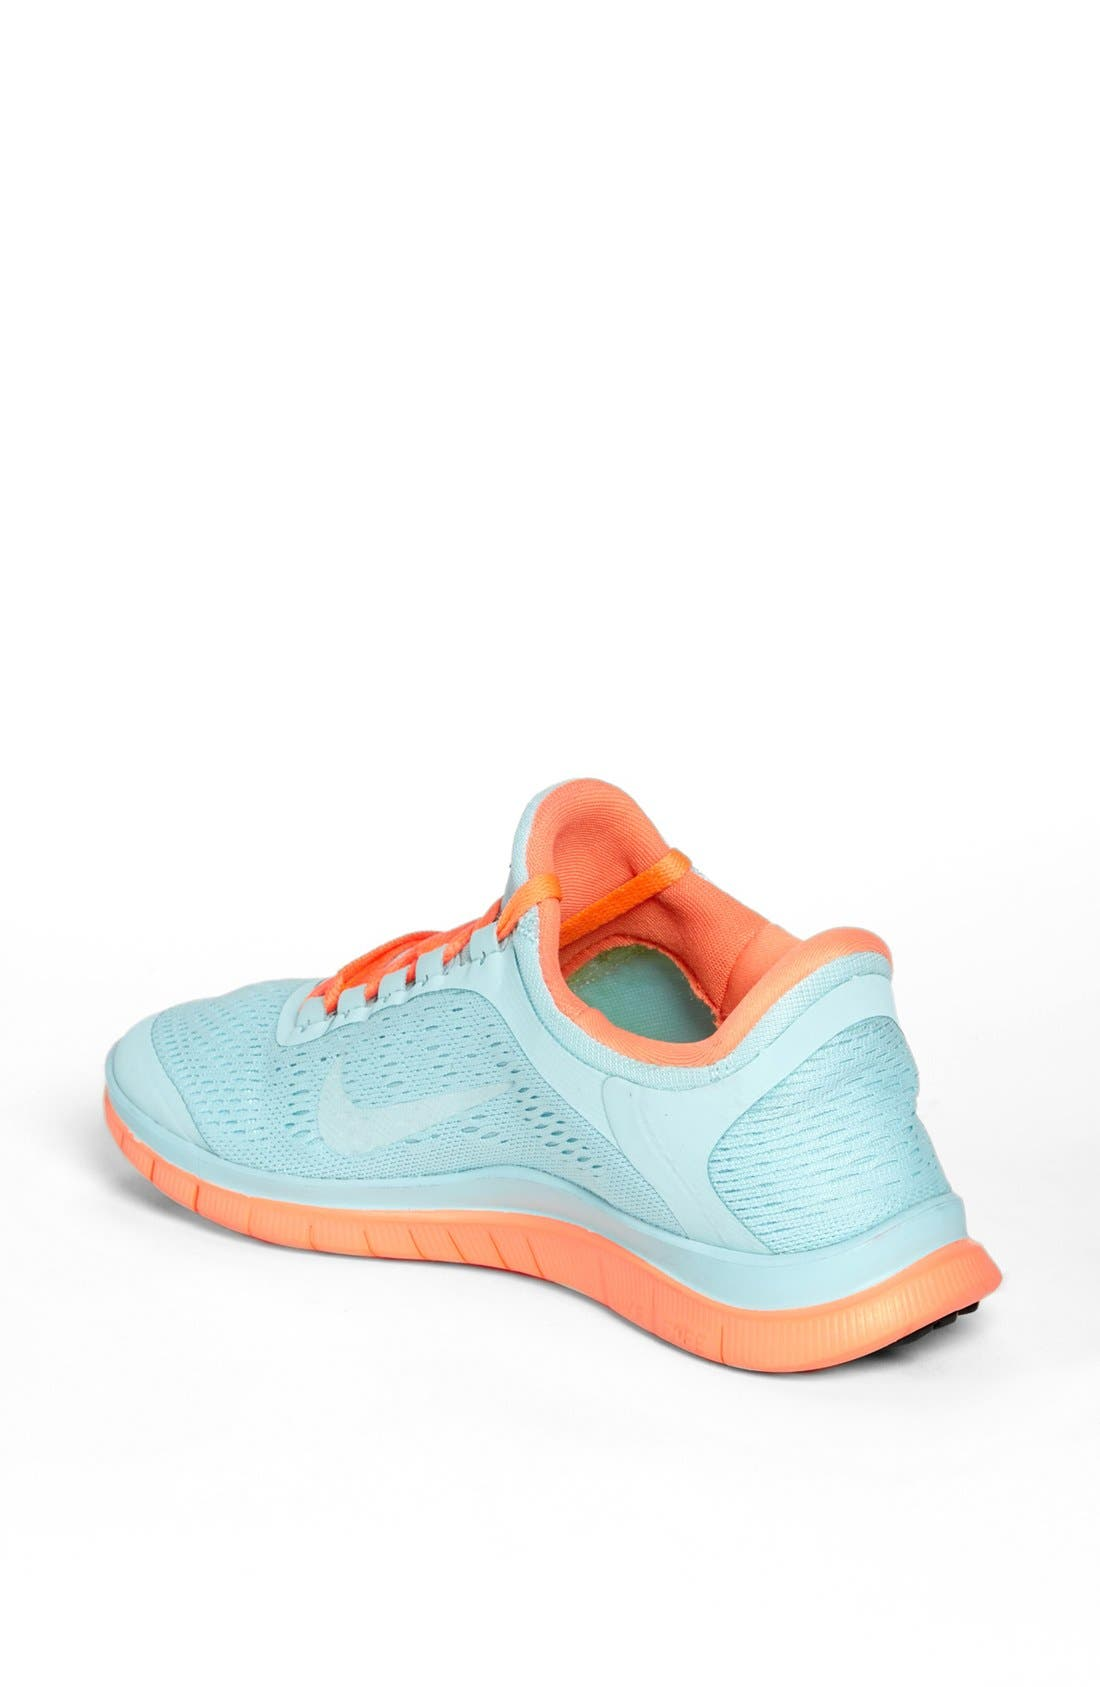 Alternate Image 2  - Nike 'Free 3.0 v5' Running Shoe (Women)